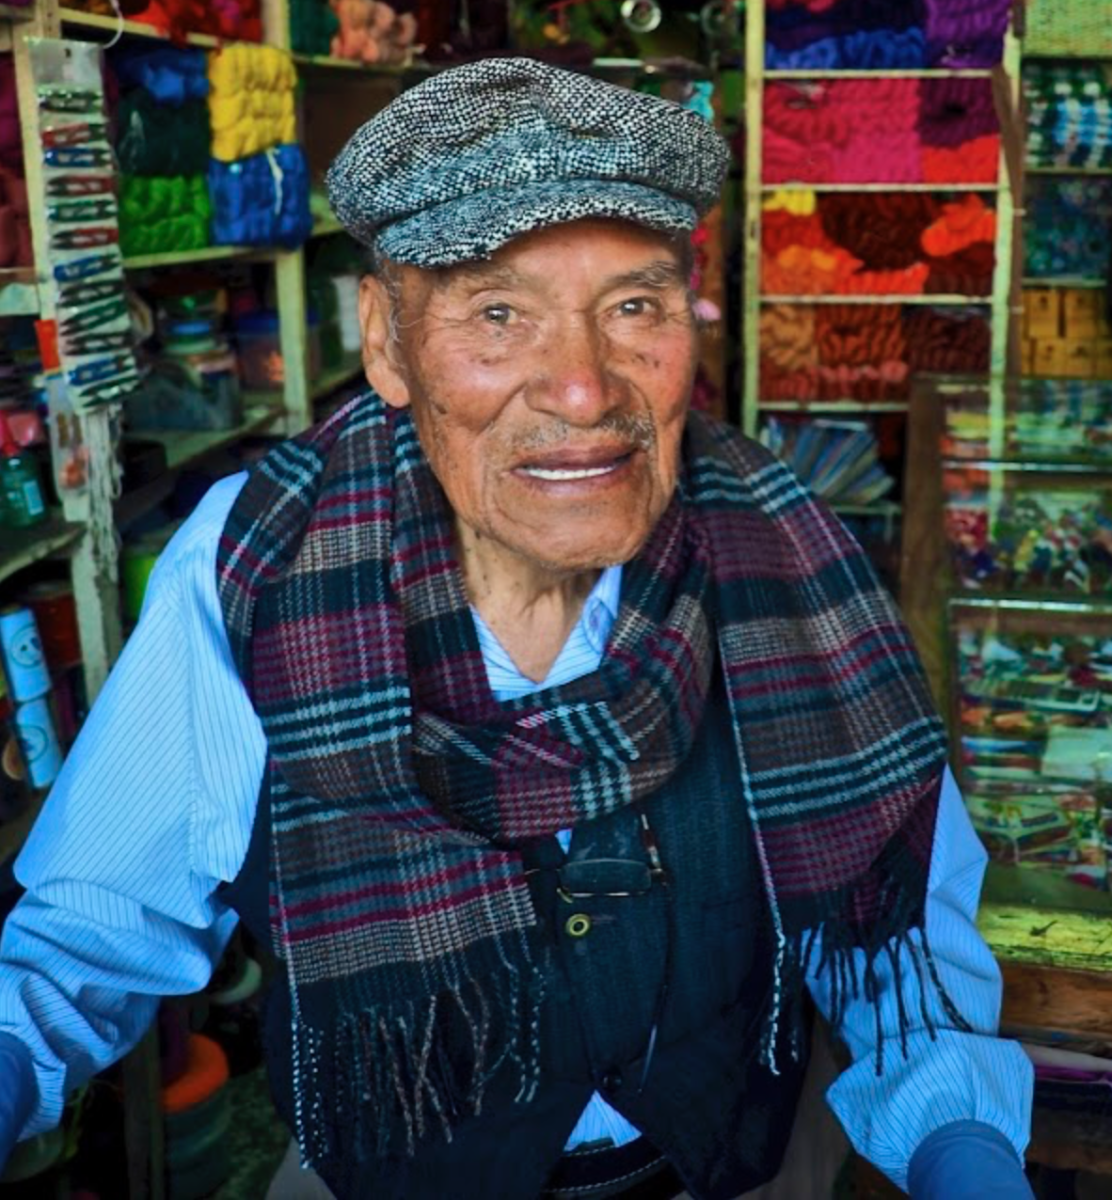 A vendor in Guatemala